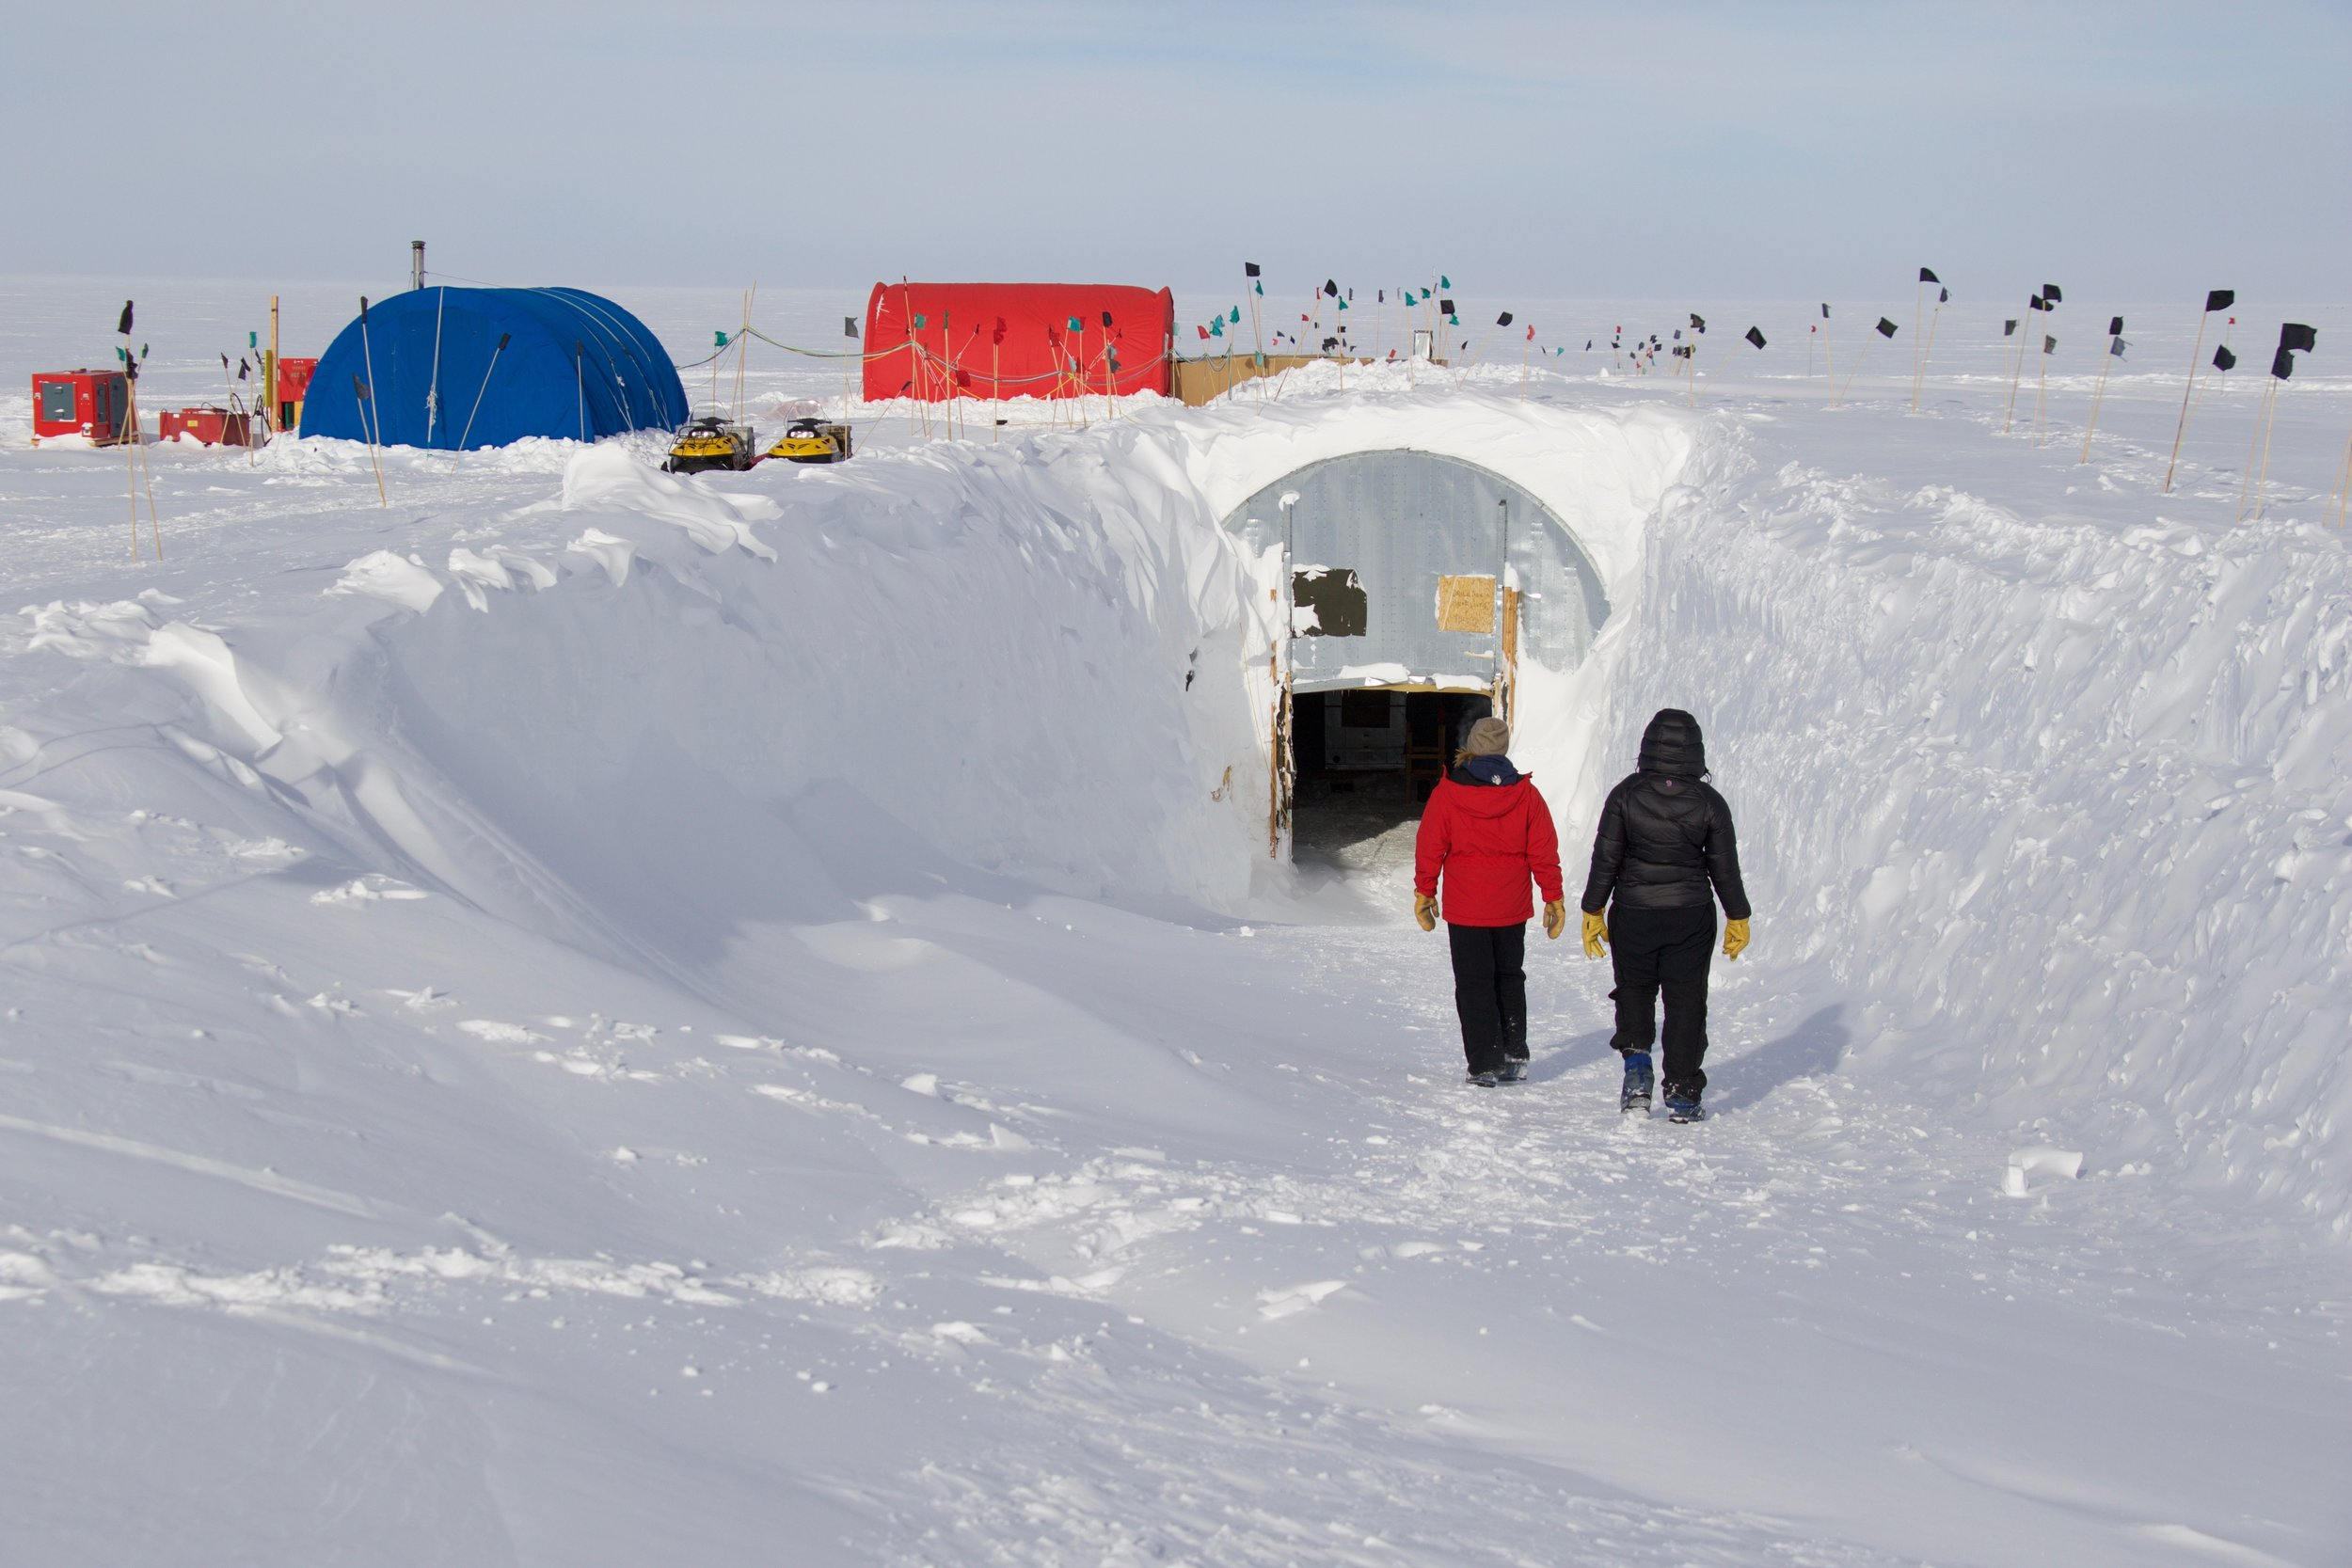 Walking down into the arch, buried in snow. The blue and red tents on the surface are the warming and logging tents we used while collecting data.